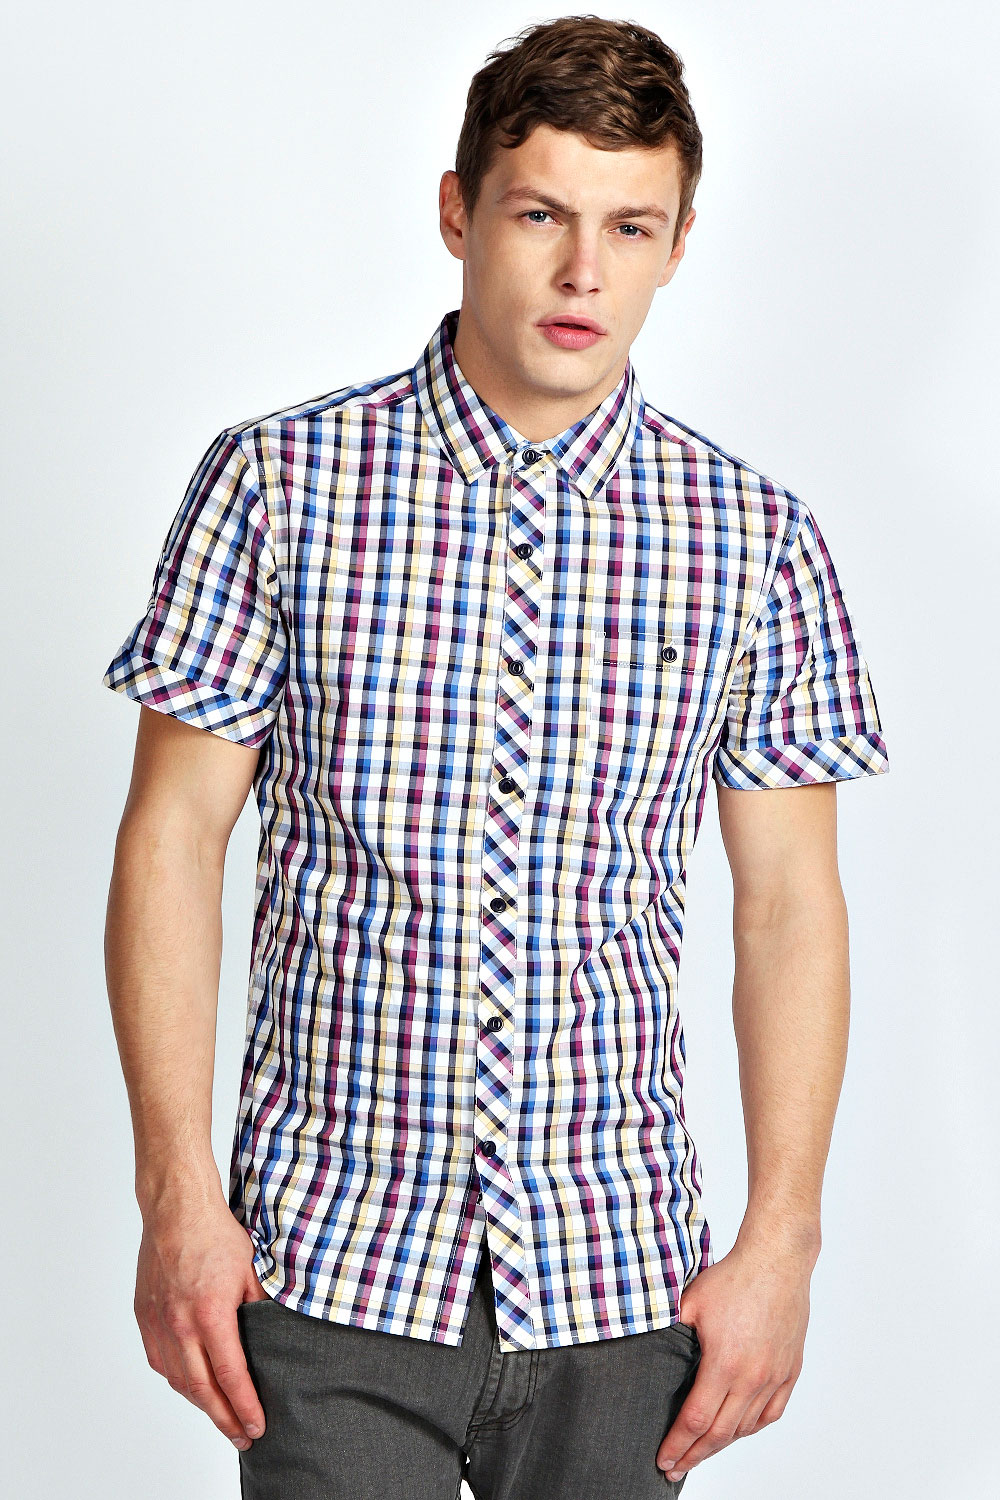 Boohoo-Mens-All-Over-Short-Sleeve-Check-Top-Shirt-In-Multi